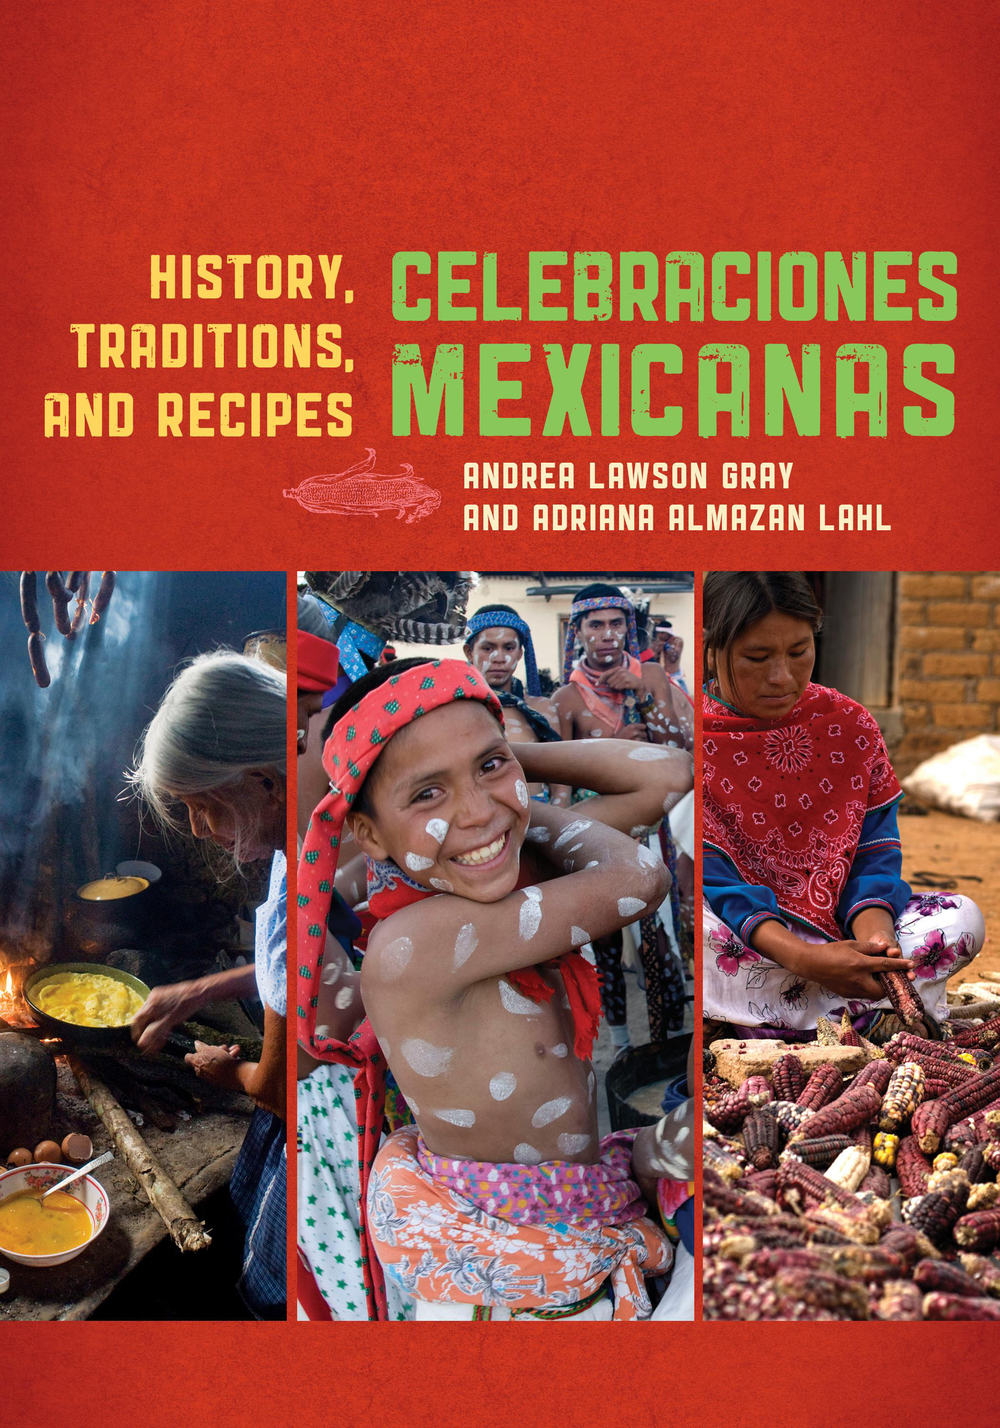 Celebraciones Mexicanas: History, Traditions, and Recipes is the first book to bring the richness and authenticity of the foods of Mexico's main holidays and celebrations to the American home cook. BUY THIS BOOK ON AMAZON.COM ABOUT THE AUTHORS